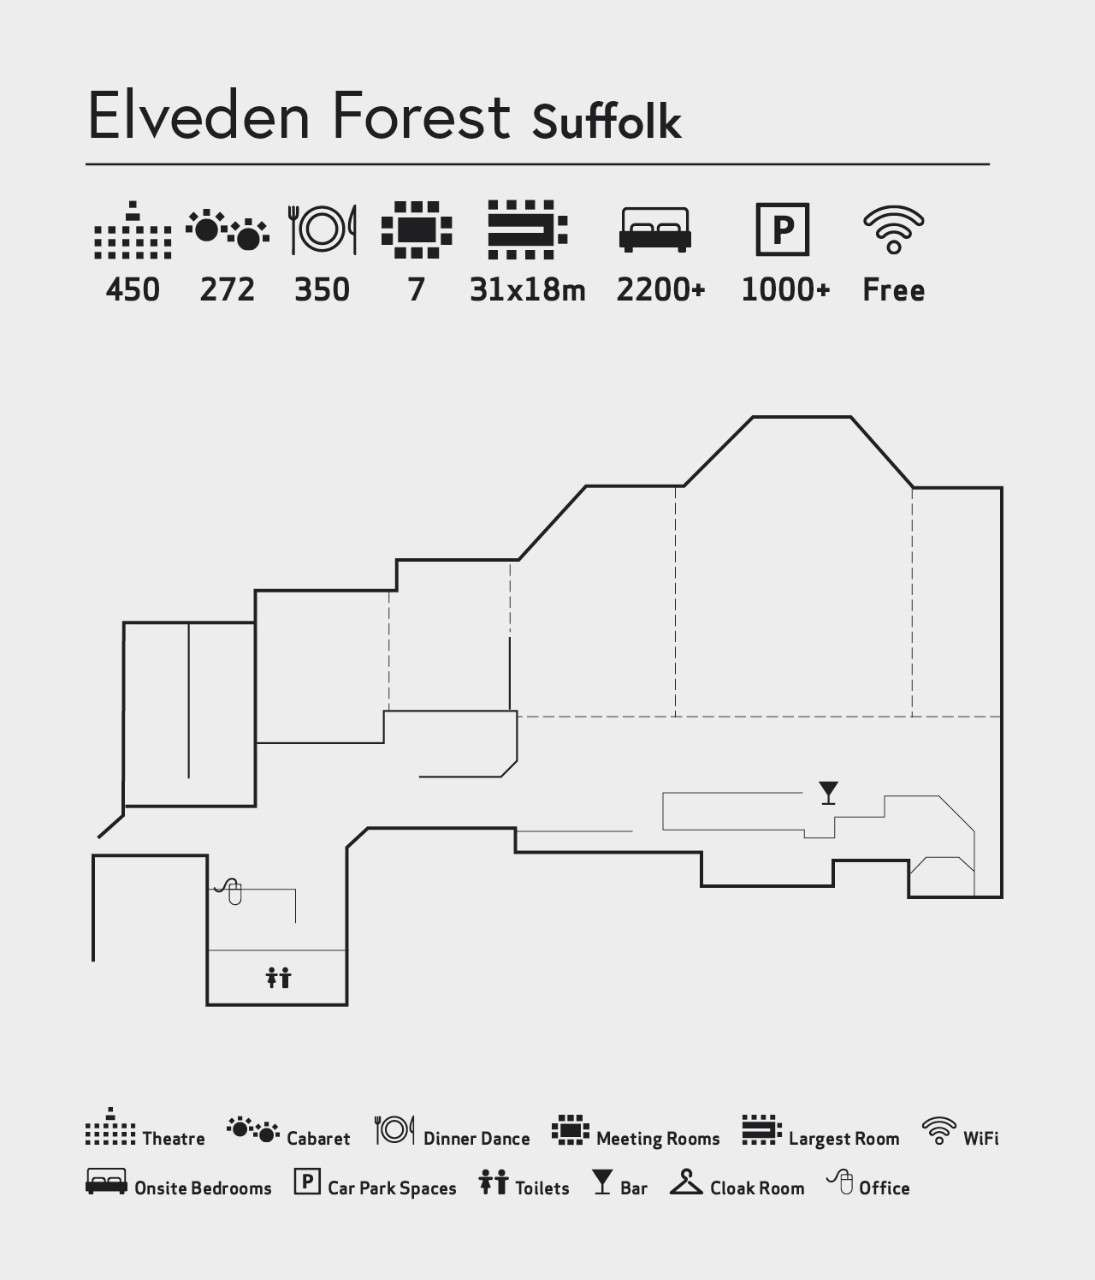 Room layout of The Venue at Elveden Forest